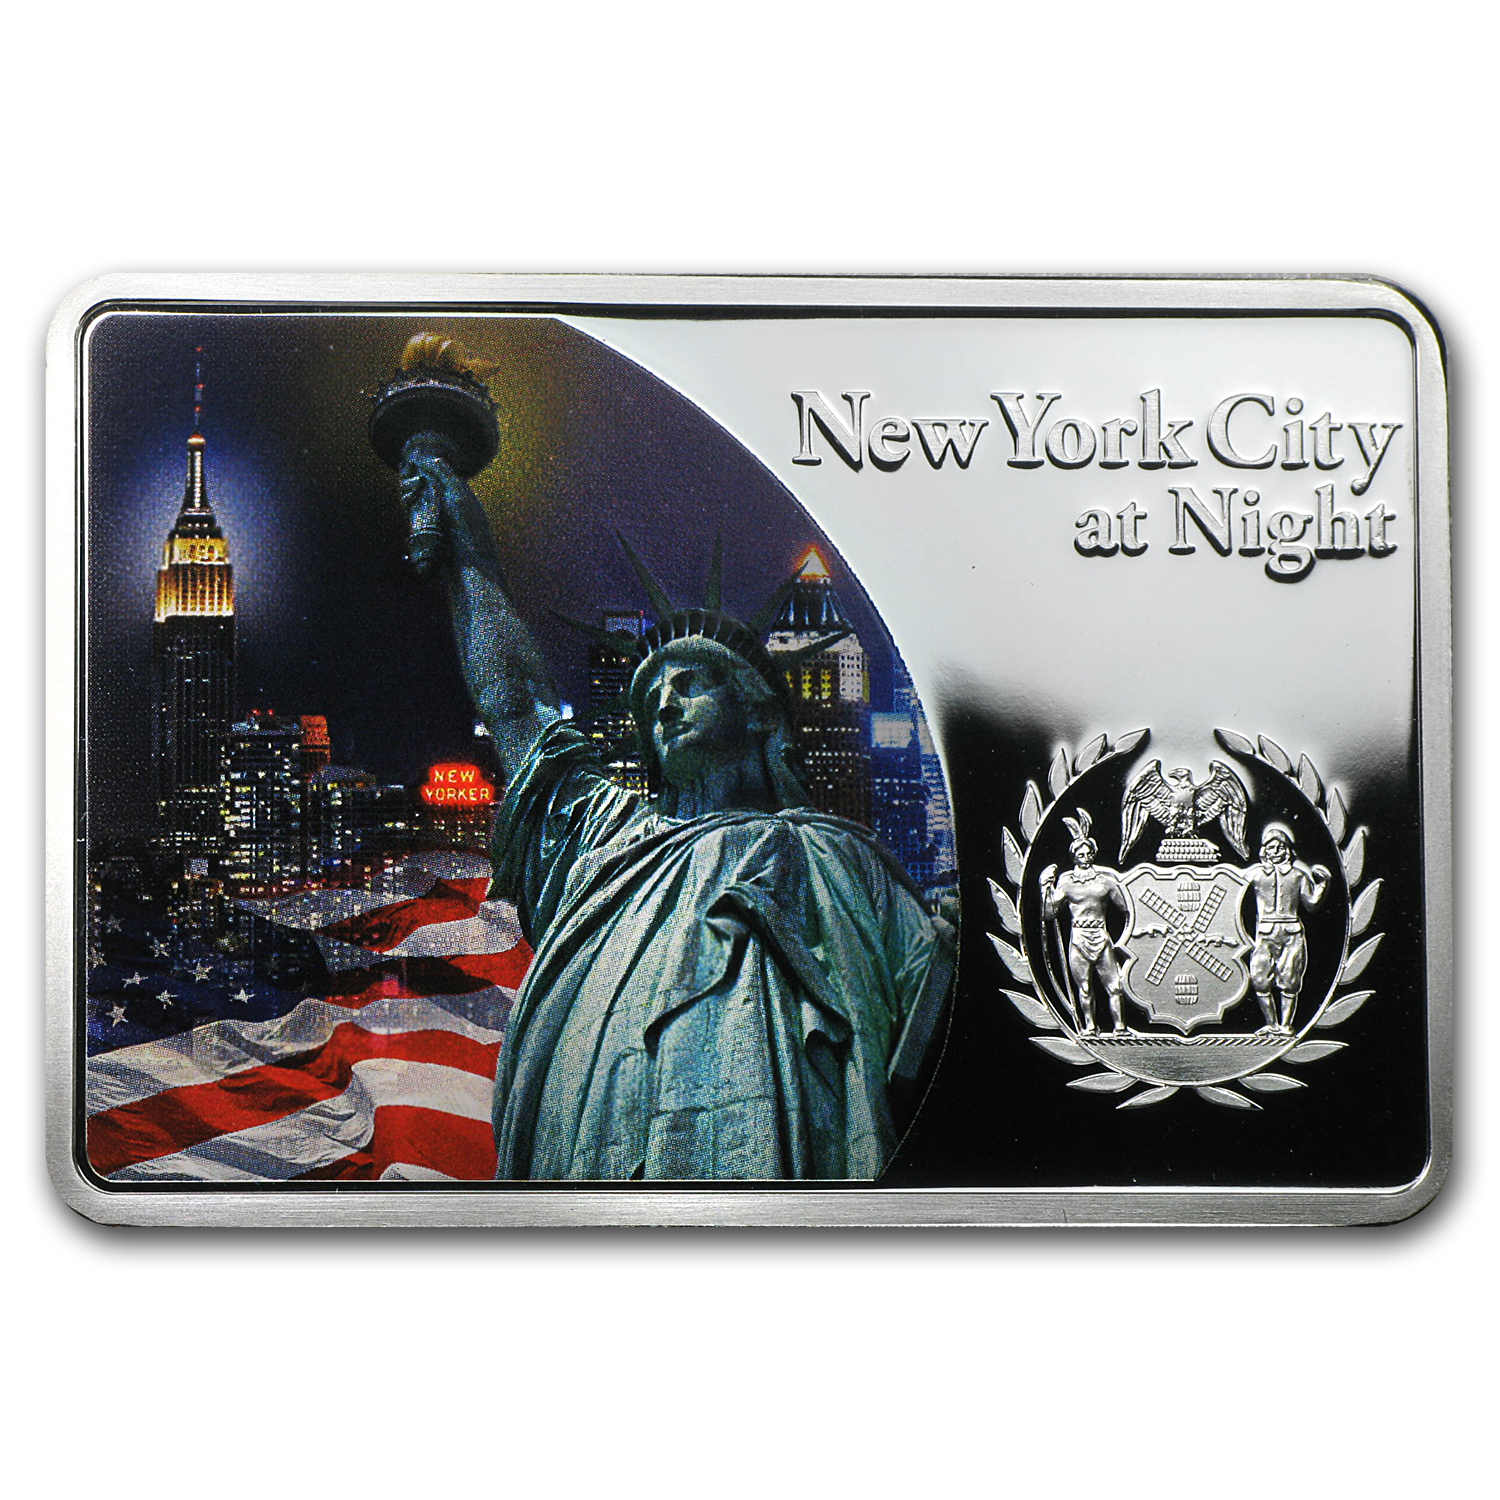 2012 Fiji 1 oz Proof Silver $10 Cities at Night New York City